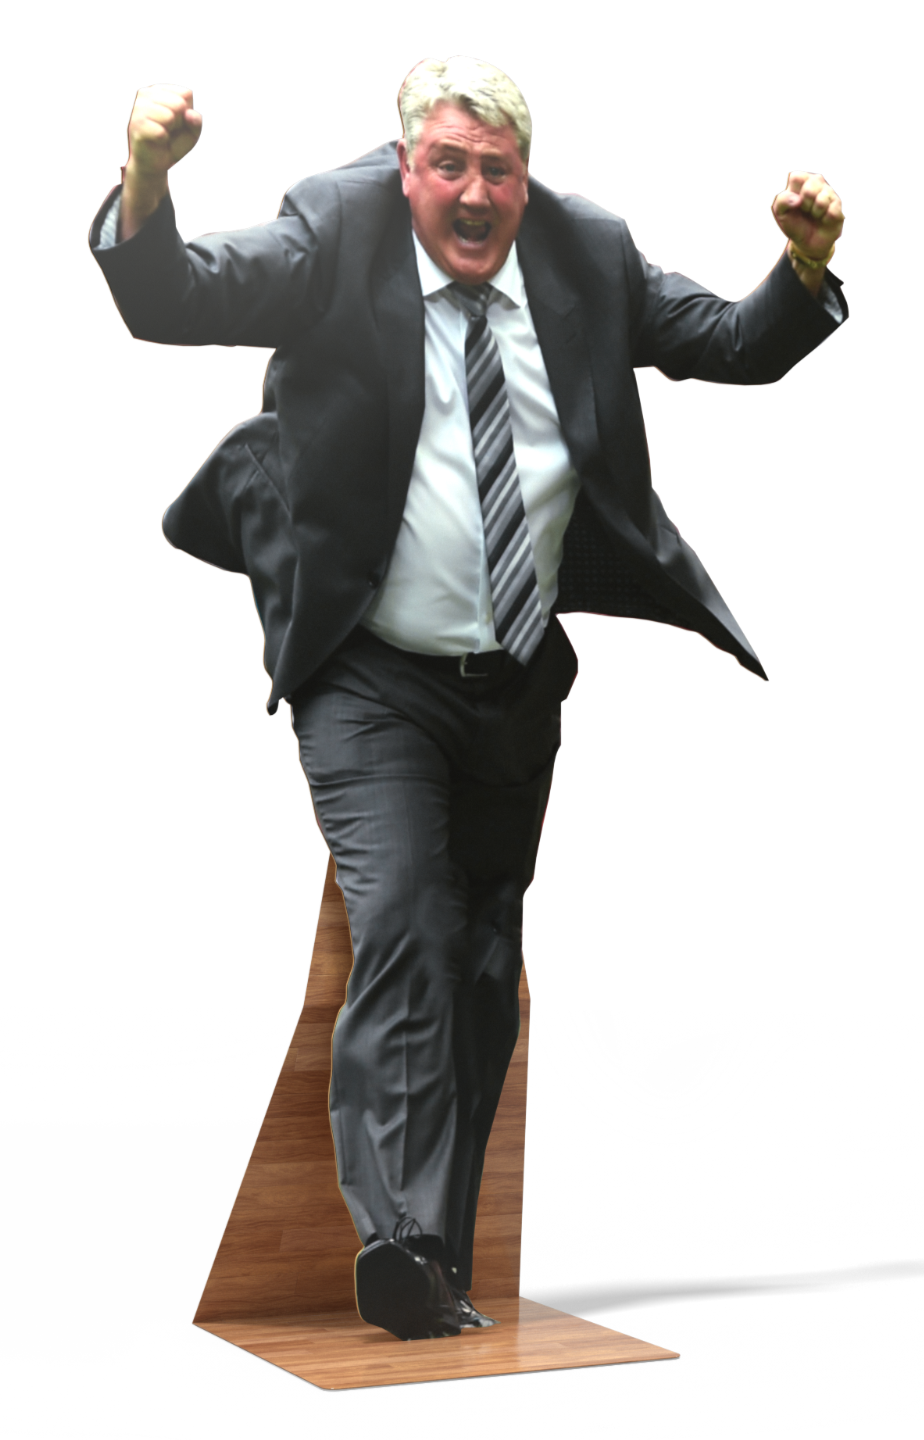 Steve Bruce Life-Size Cardboard Cut-Out | Bruce Up Your Wedding